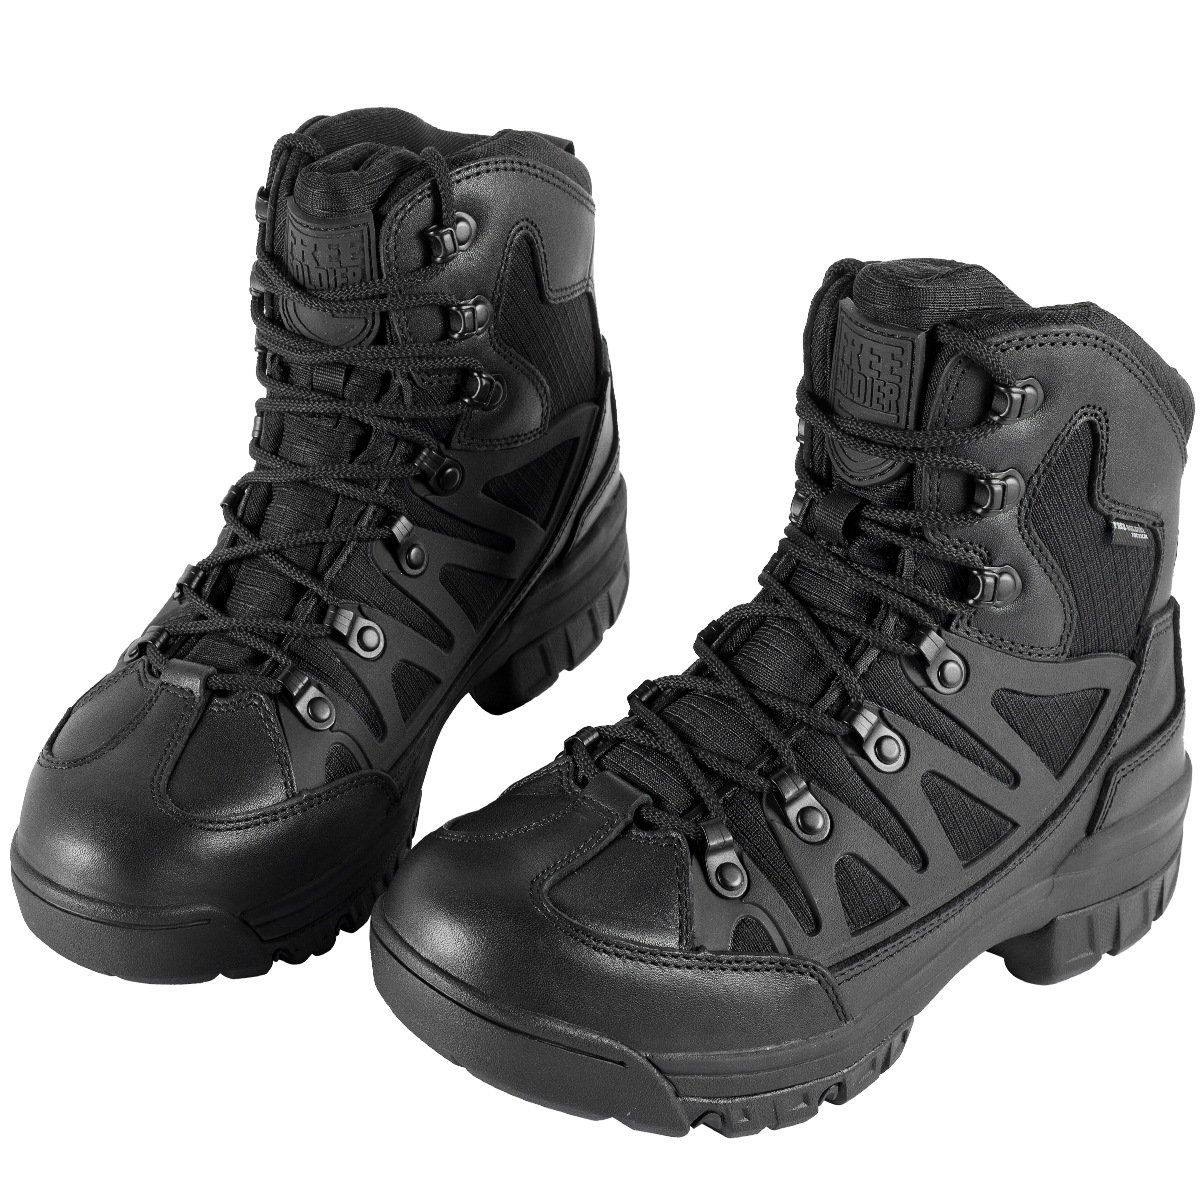 FREE SOLDIER Waterproof Mid Hiking Boots 6 Inch Outdoor Breathable Suedu Leather Tactical and Military Shoe(Black leather 10)